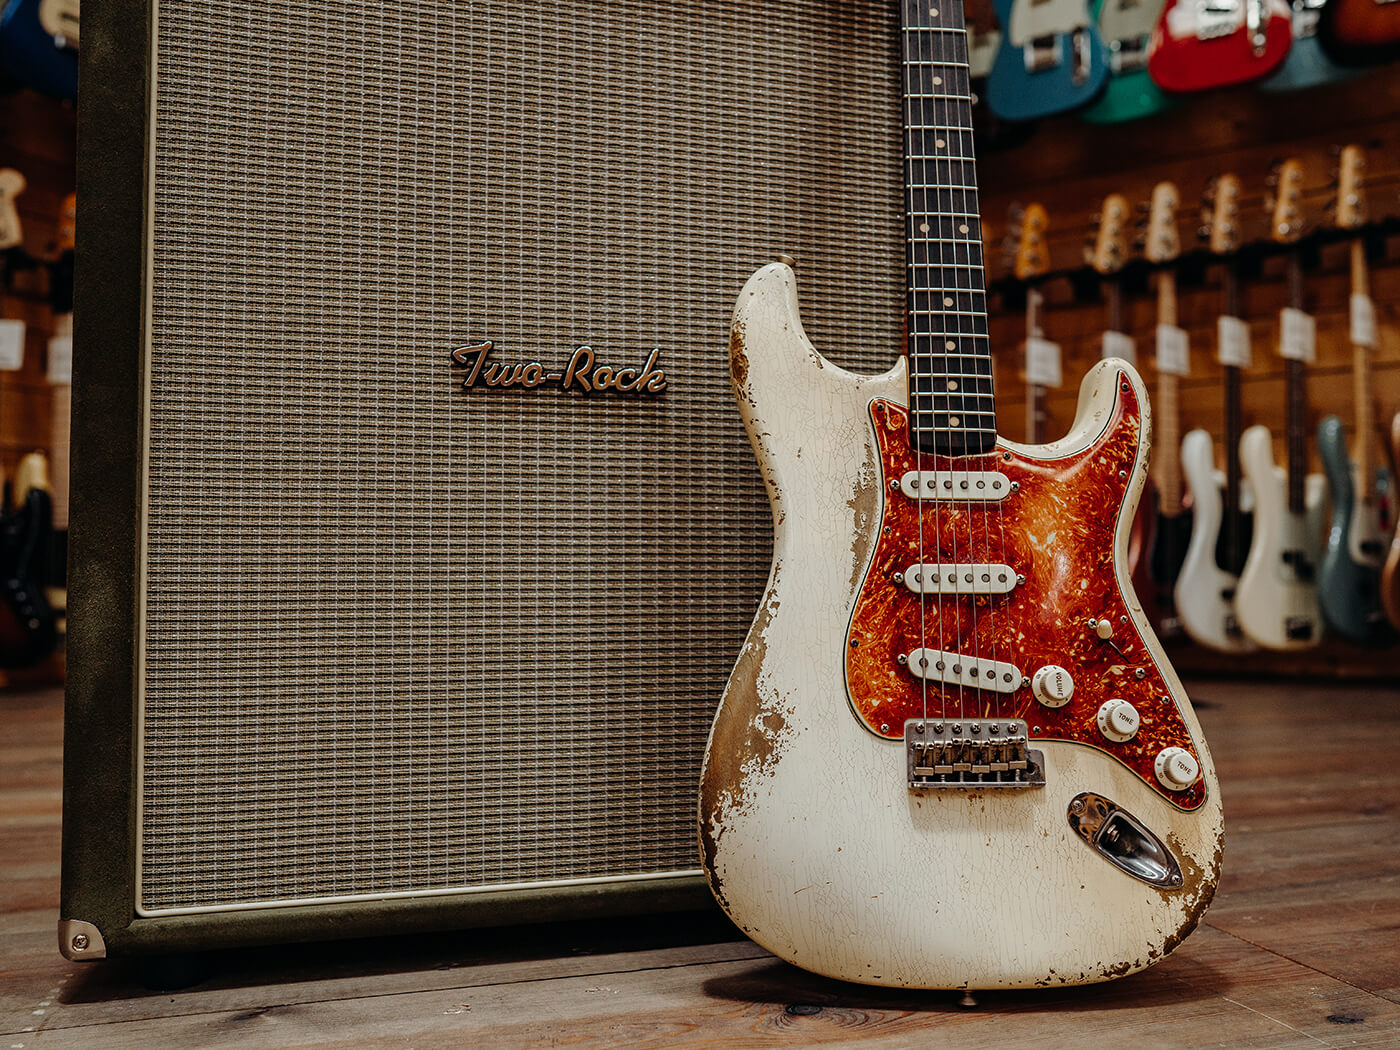 Fender Stratocaster w Two Rock Silver Sterling Signature